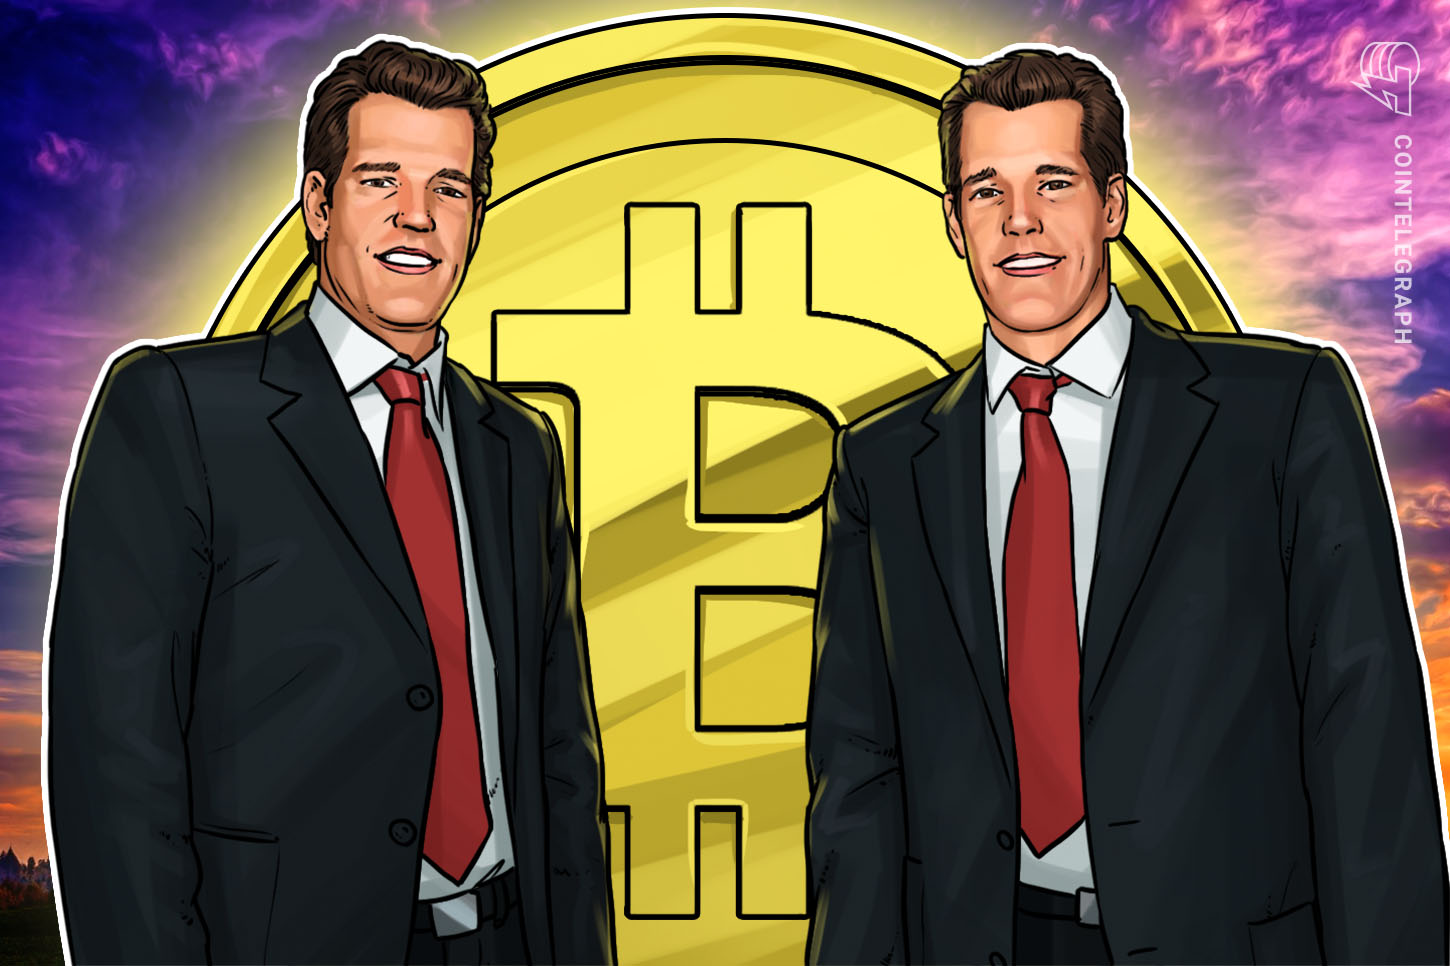 bitcoin-price-rise-to-500k-is-inevitable-winklevoss-twins-say